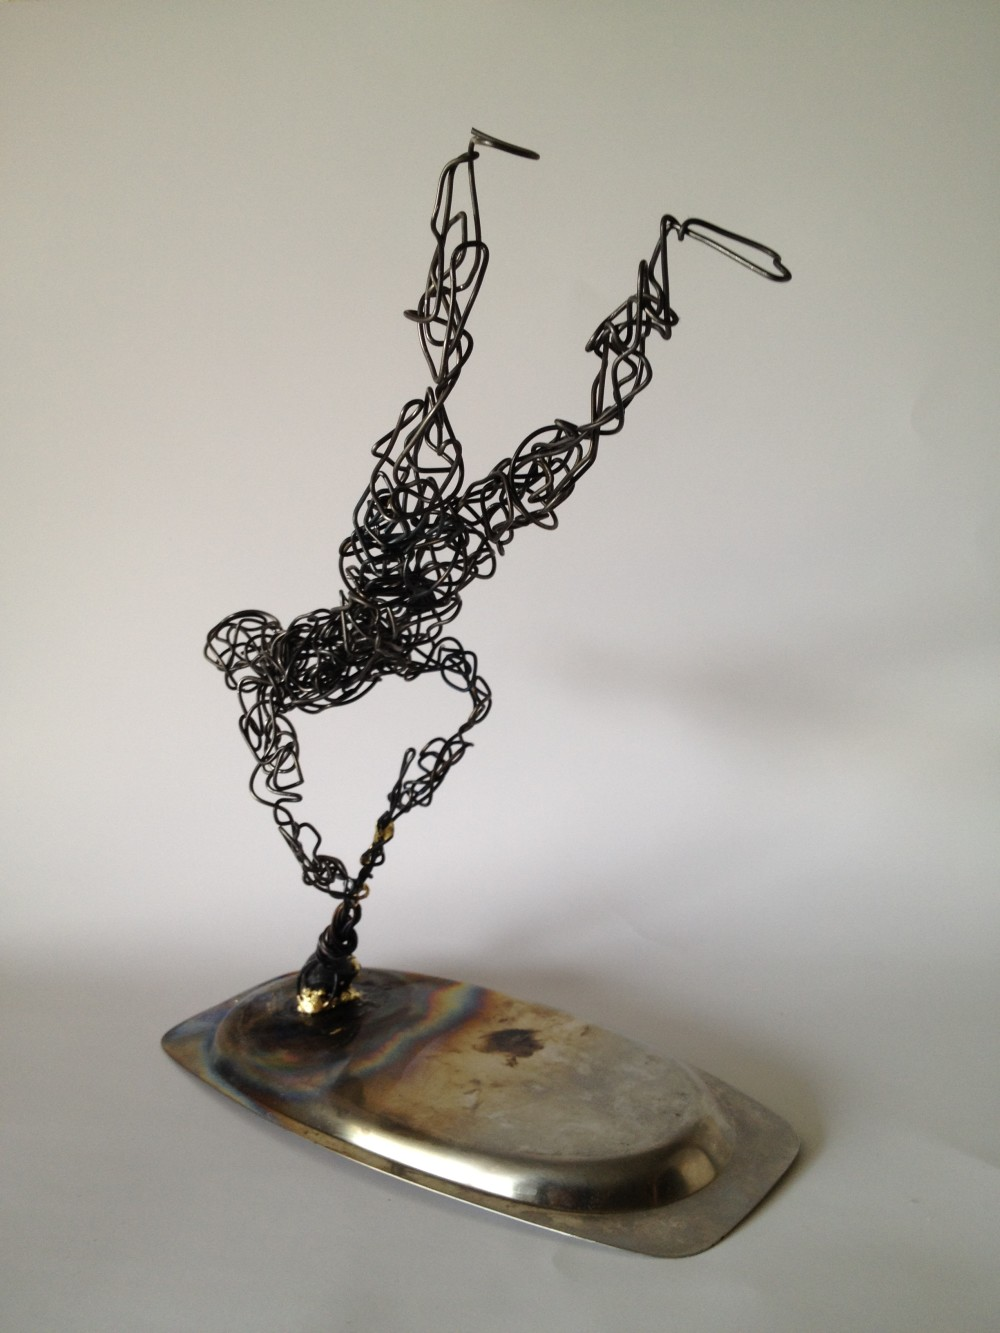 wire sculpture blown away 5 frank marino baker drip